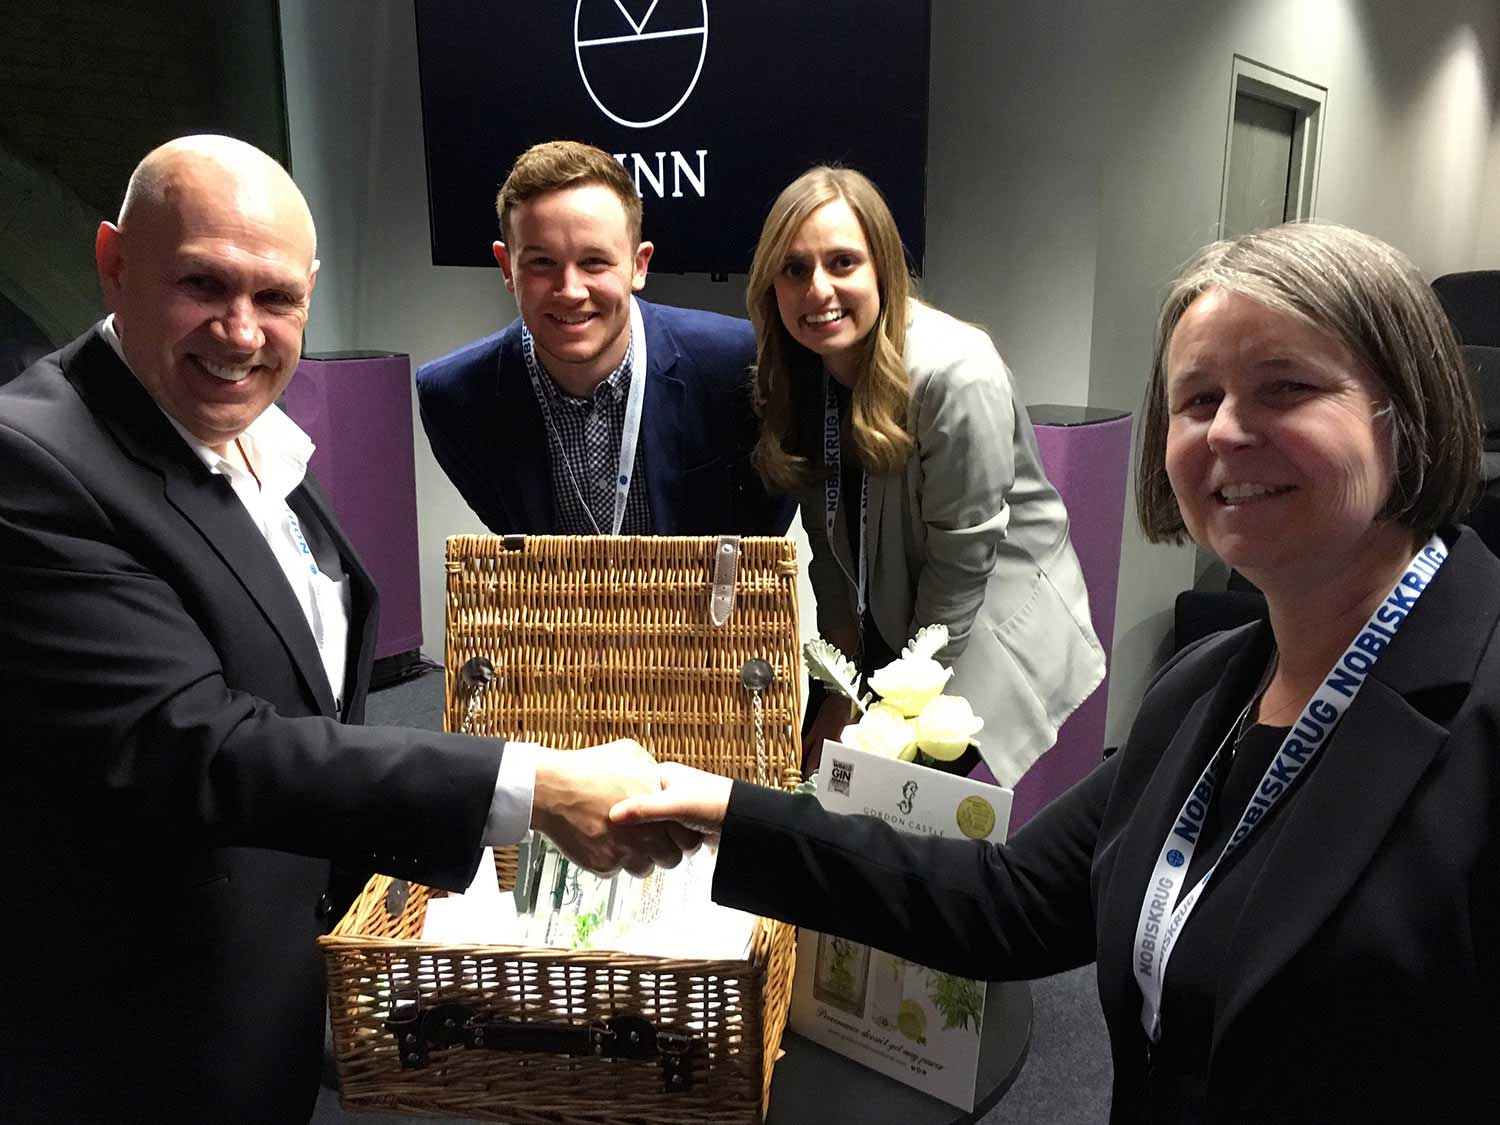 Julie Gauthier presenting  Gordon Castle  hamper to winner Kevin Drayton, One17  with team Matthew Lee and Kerry Doyle